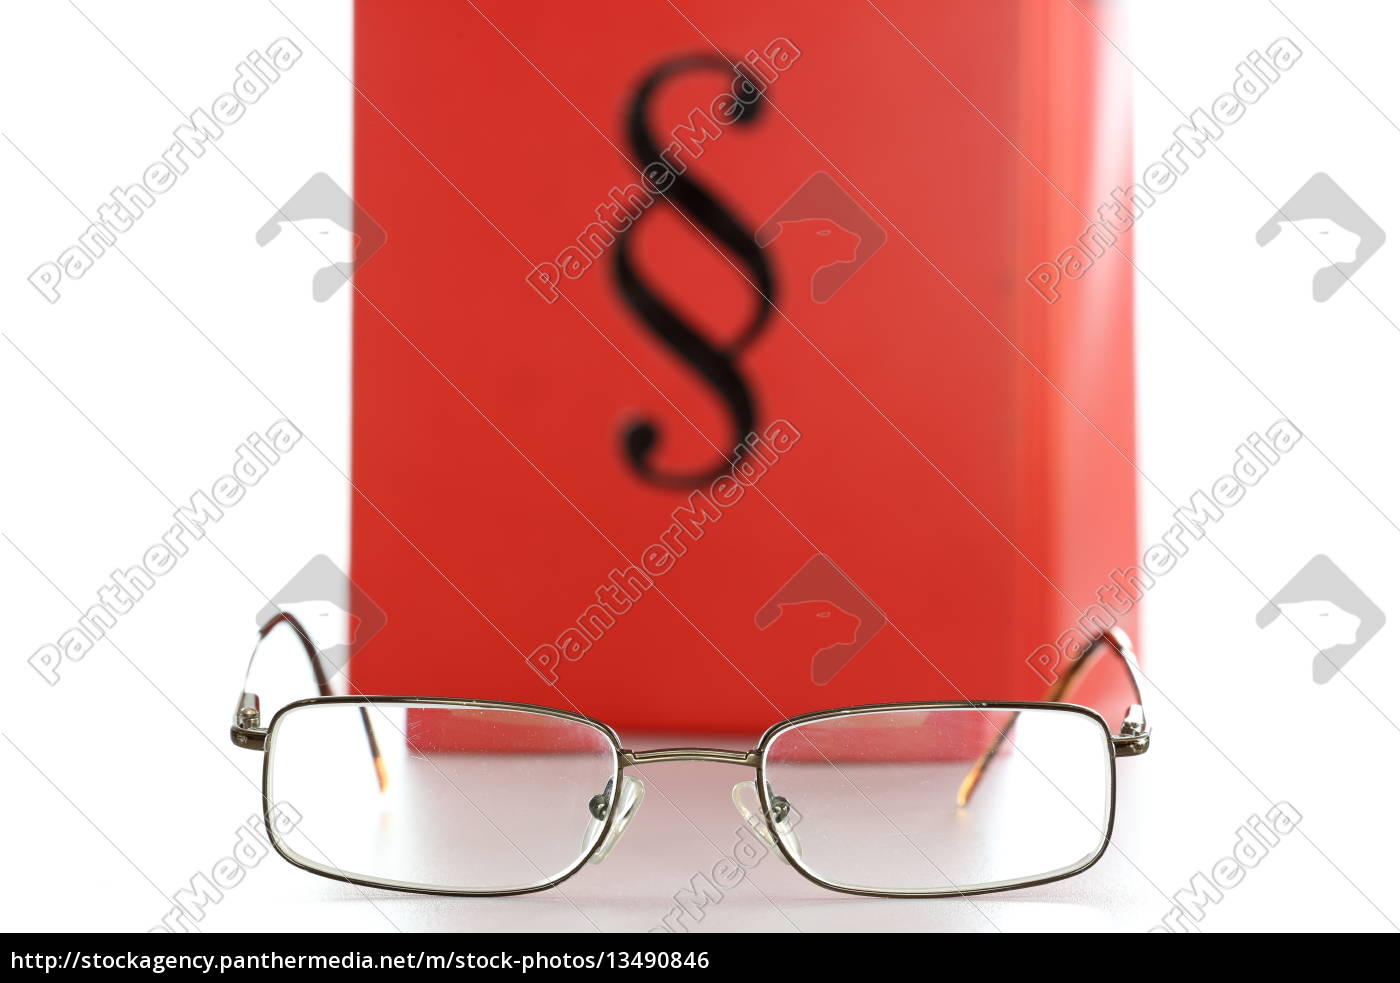 glasses, against, law, book - 13490846